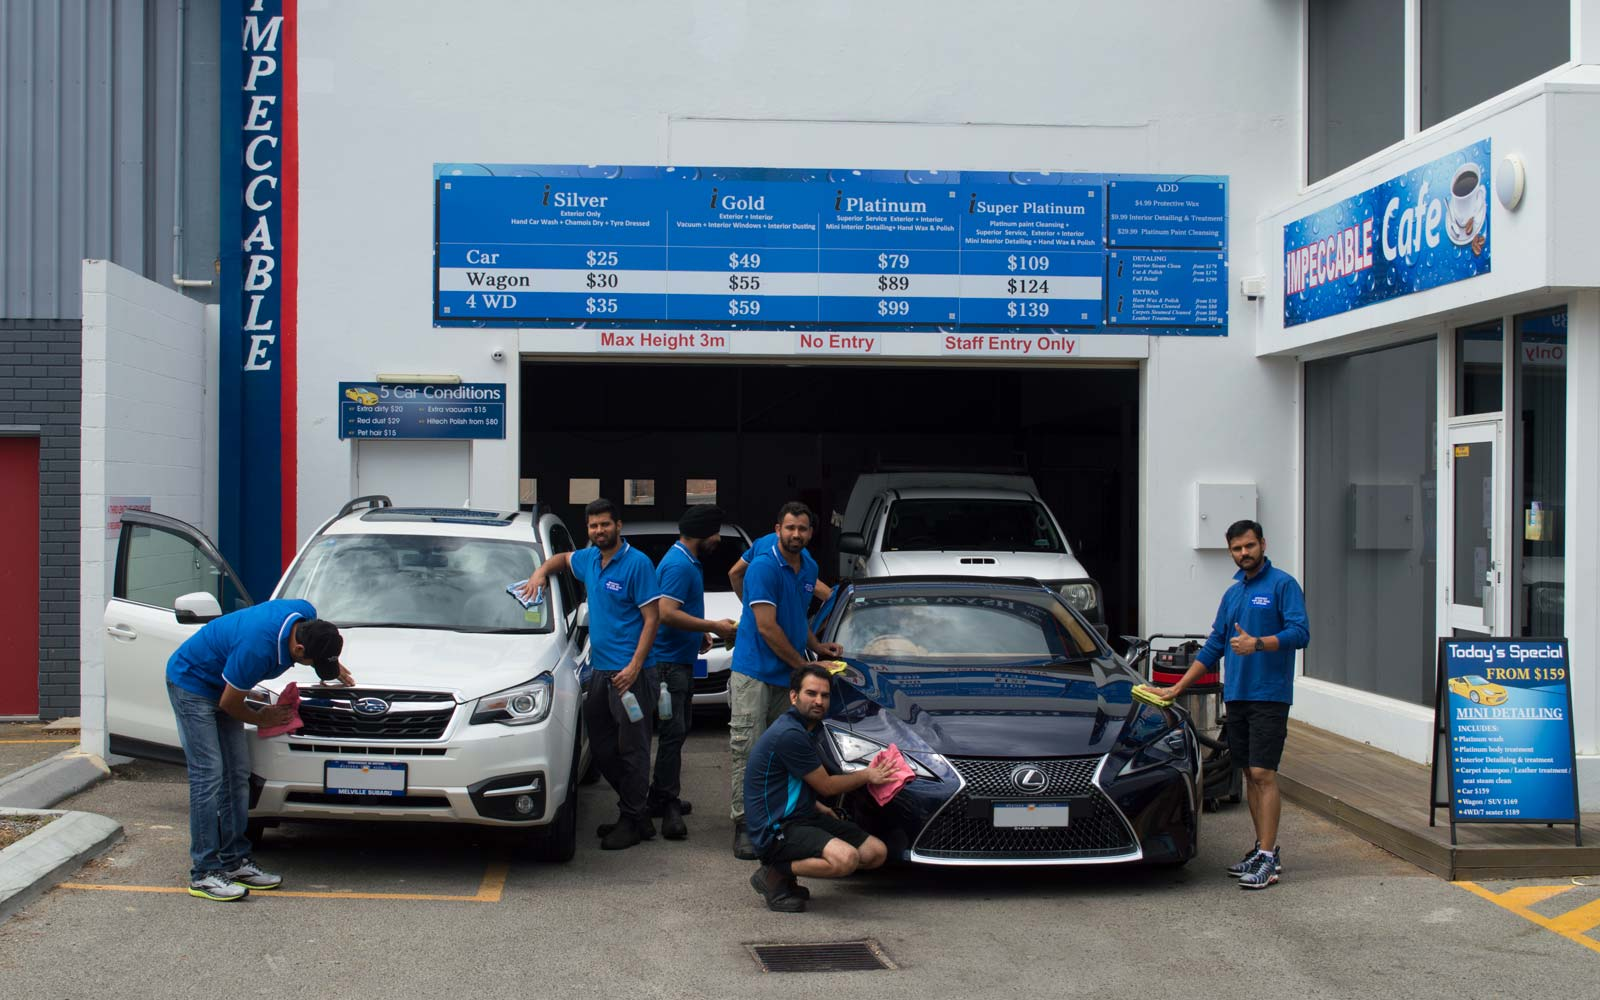 Impeccable Hand Car Wash & Detailing East Perth Team